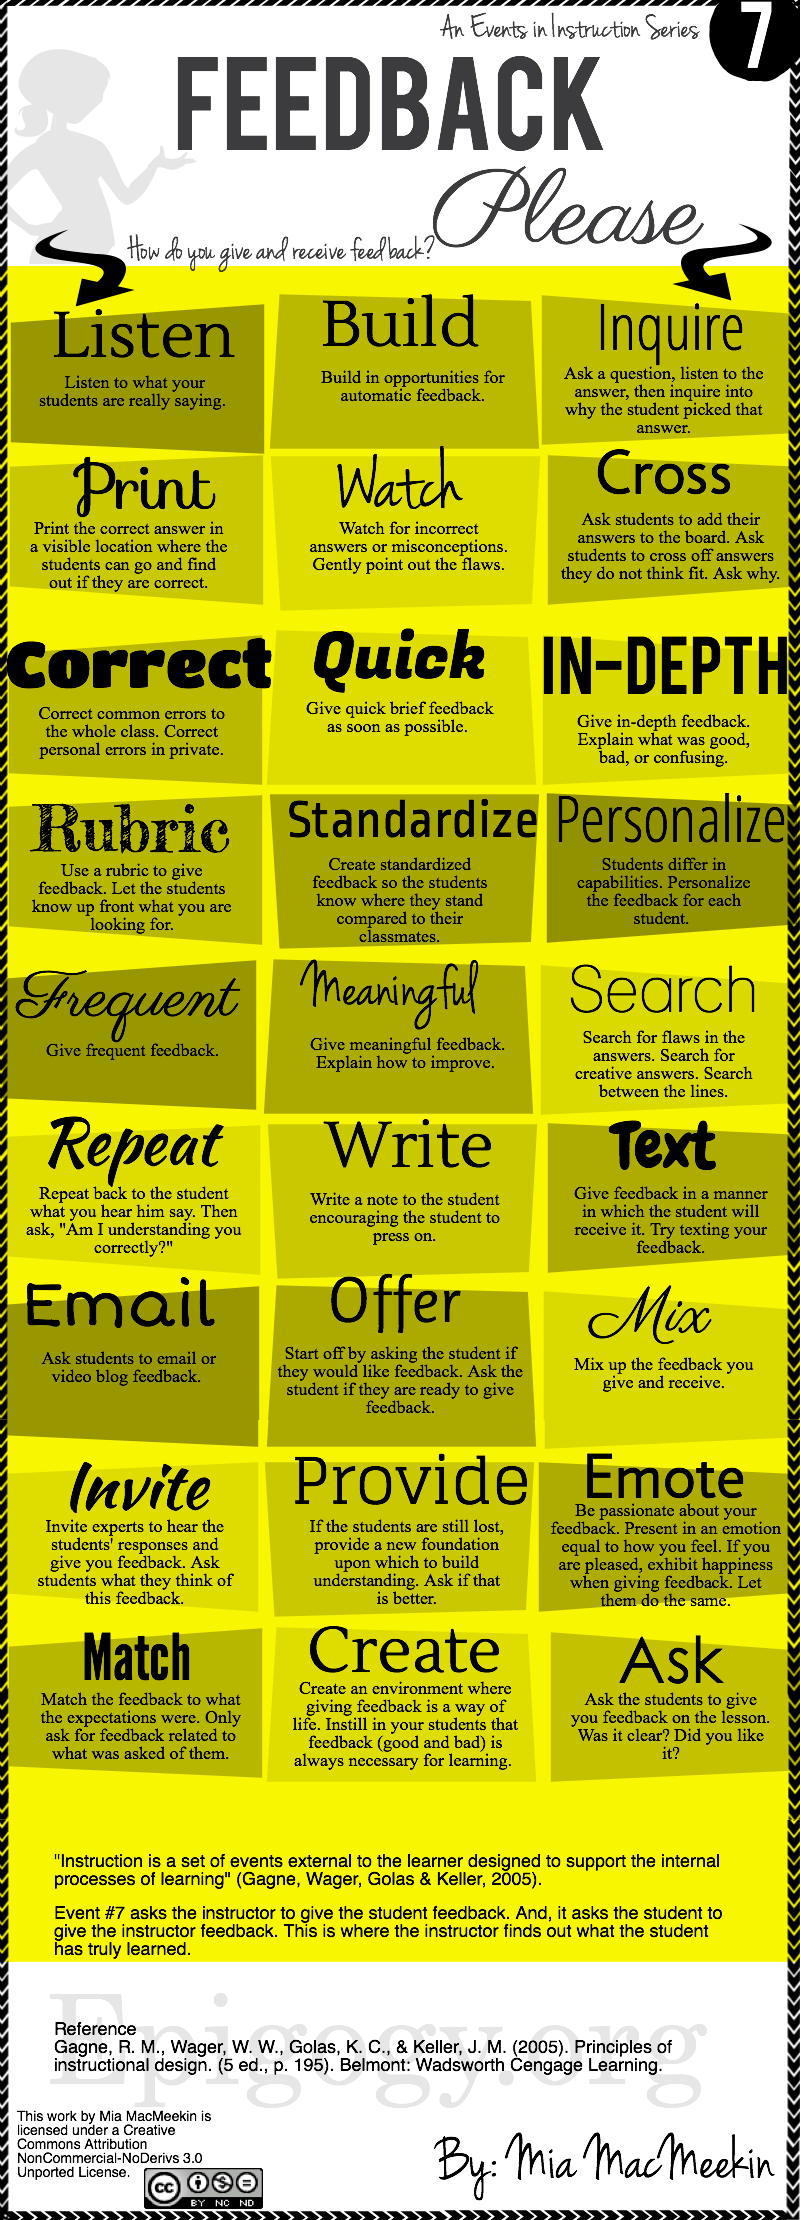 27 Ways Teachers Can Give and Receive Feedback Infographic